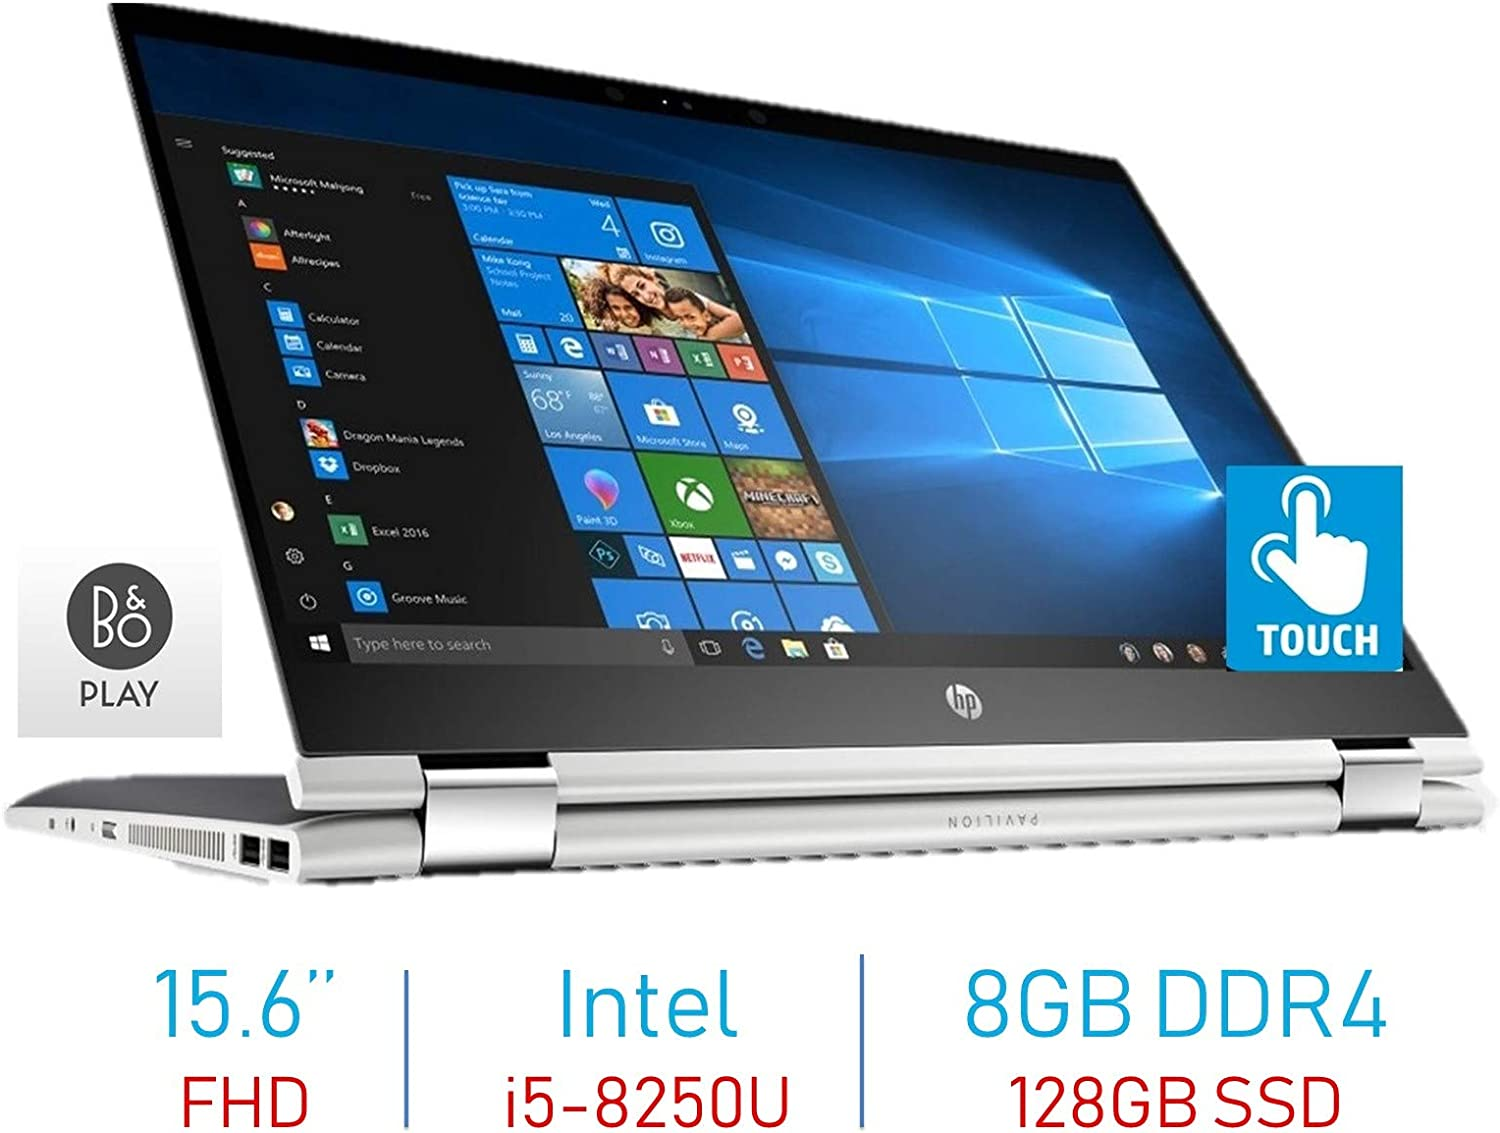 HP Premium X360 15.6'' 2-in-1 Touchscreen FHD IPS WLED-Backlit Display Laptop PC (8th Gen Quad-Core Intel i5-8250U (>i7-7500U), Bluetooth, Webcam, 8GB DDR4 RAM, 128GB SSD Windows 10